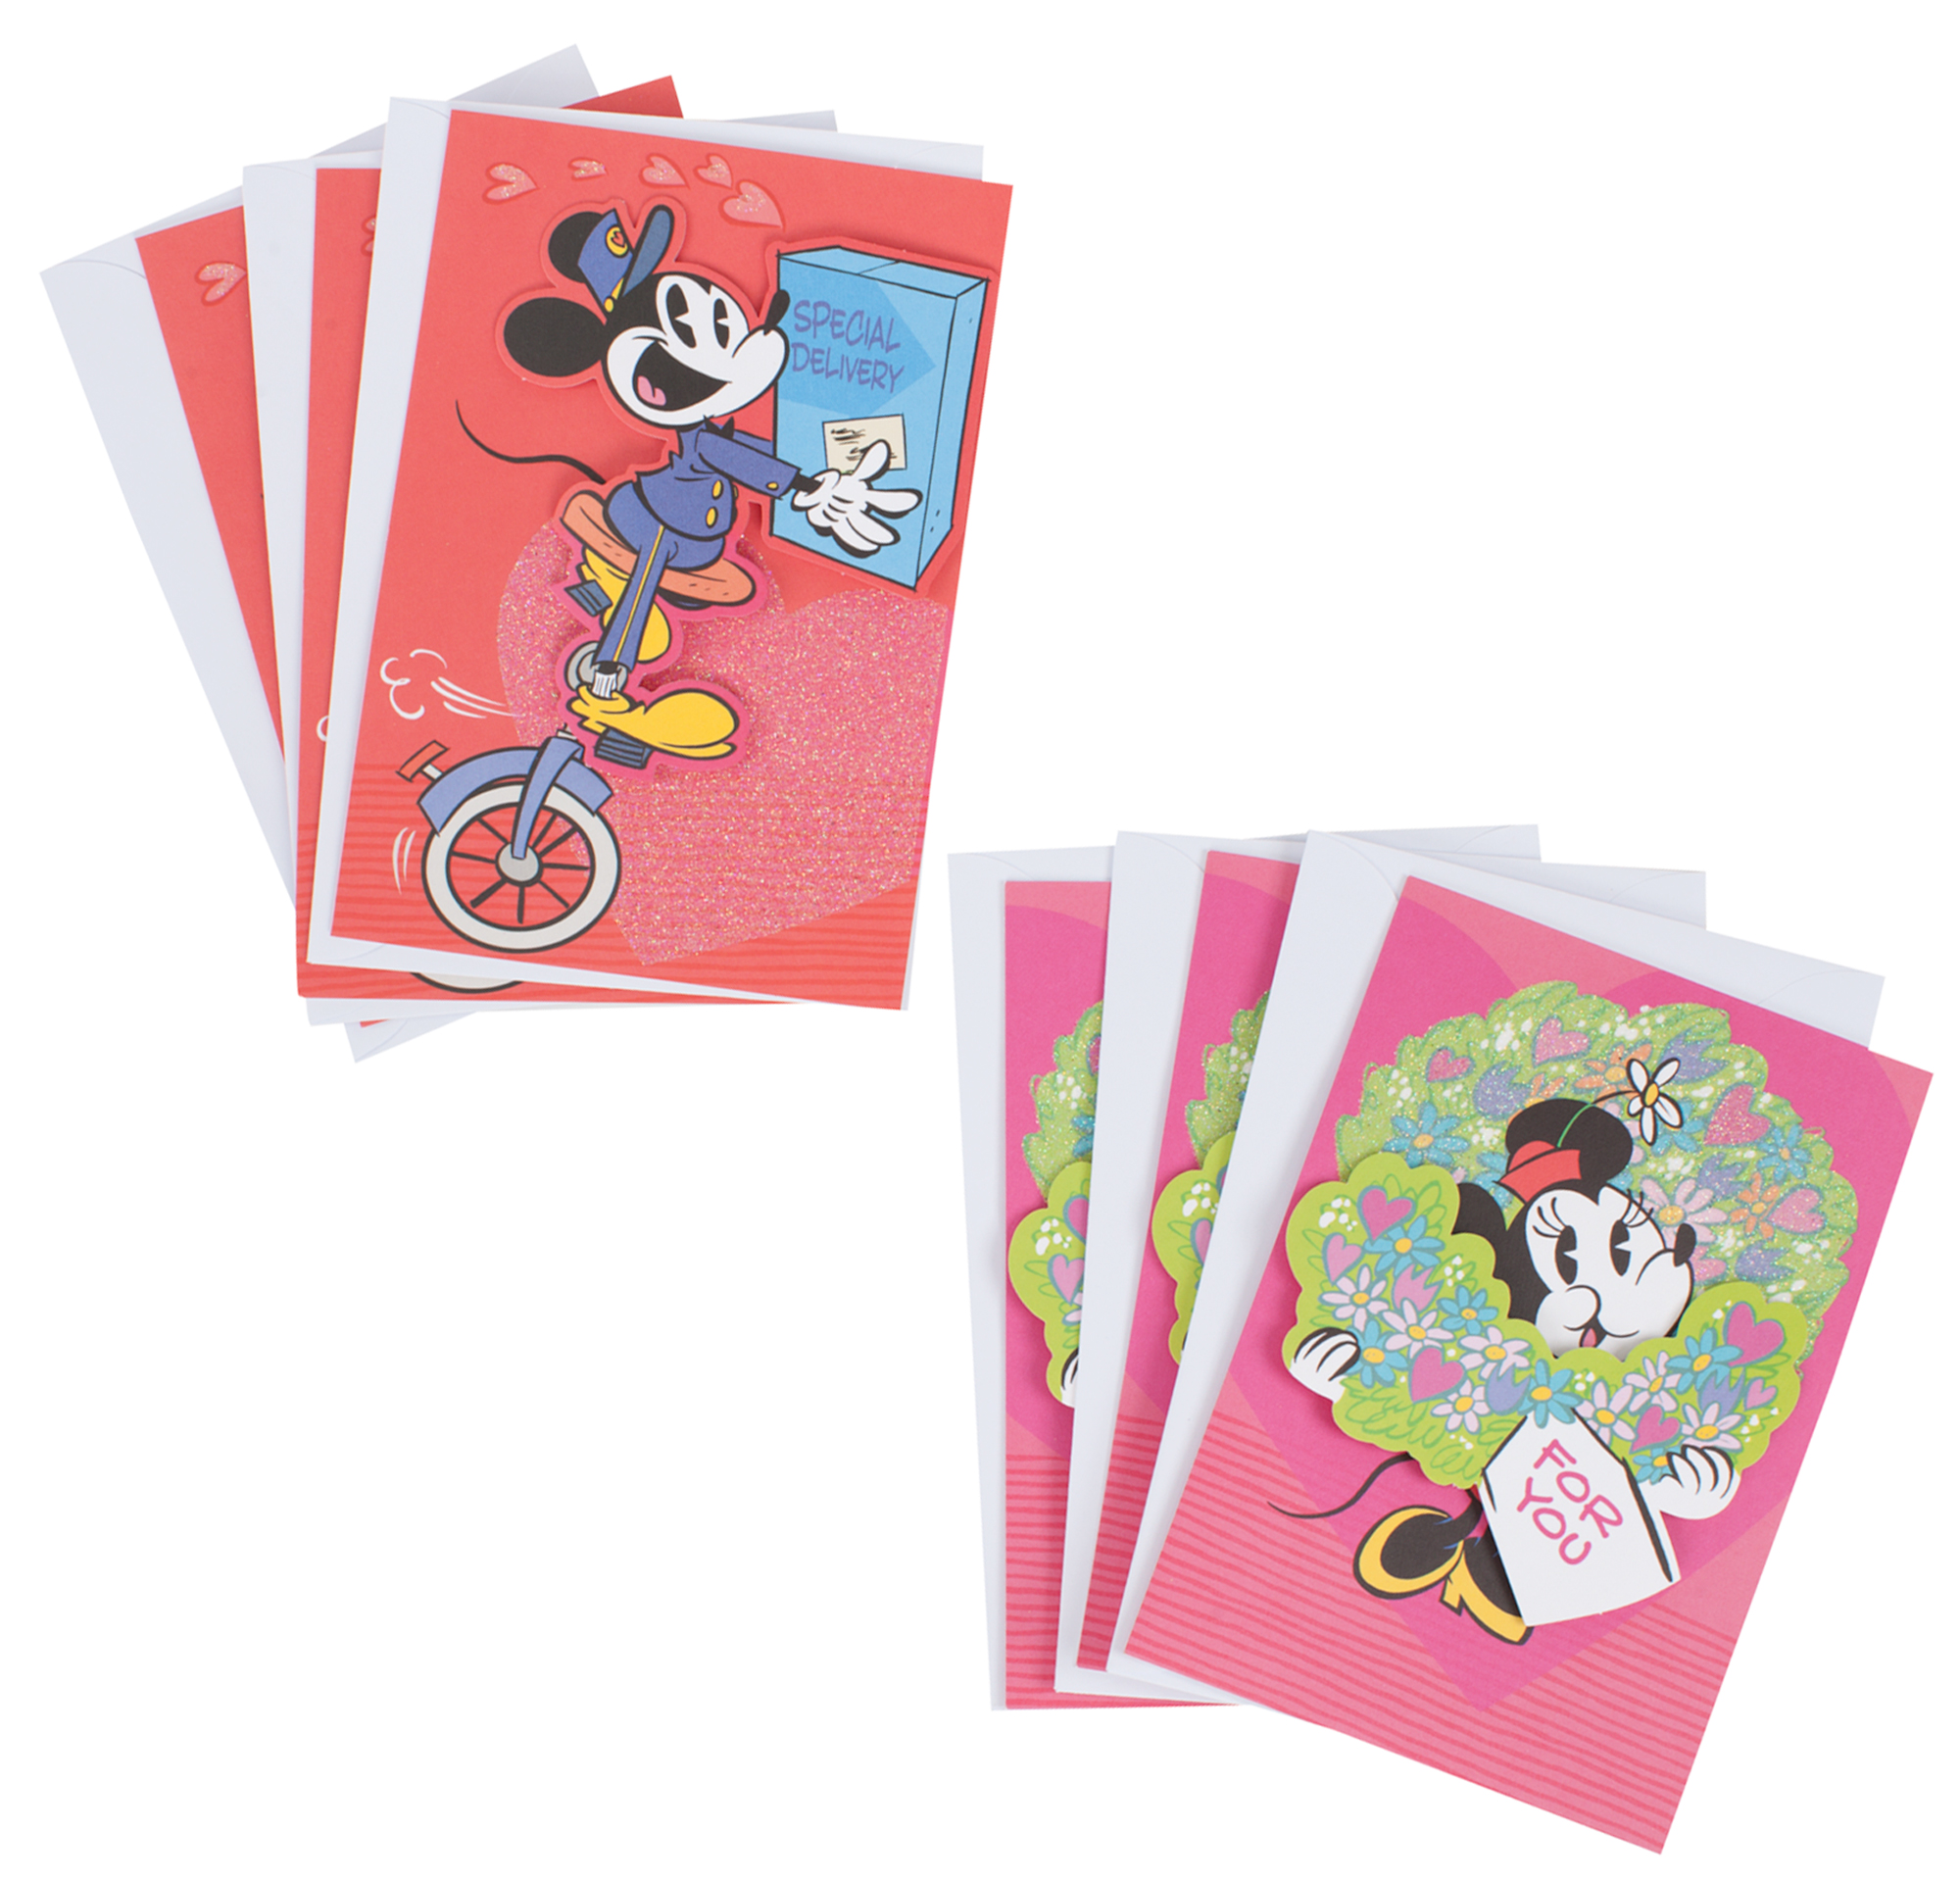 Hallmark, Mickey, Valentines Day Greeting Card Assortment, 6 Cards and 6 Envelopes